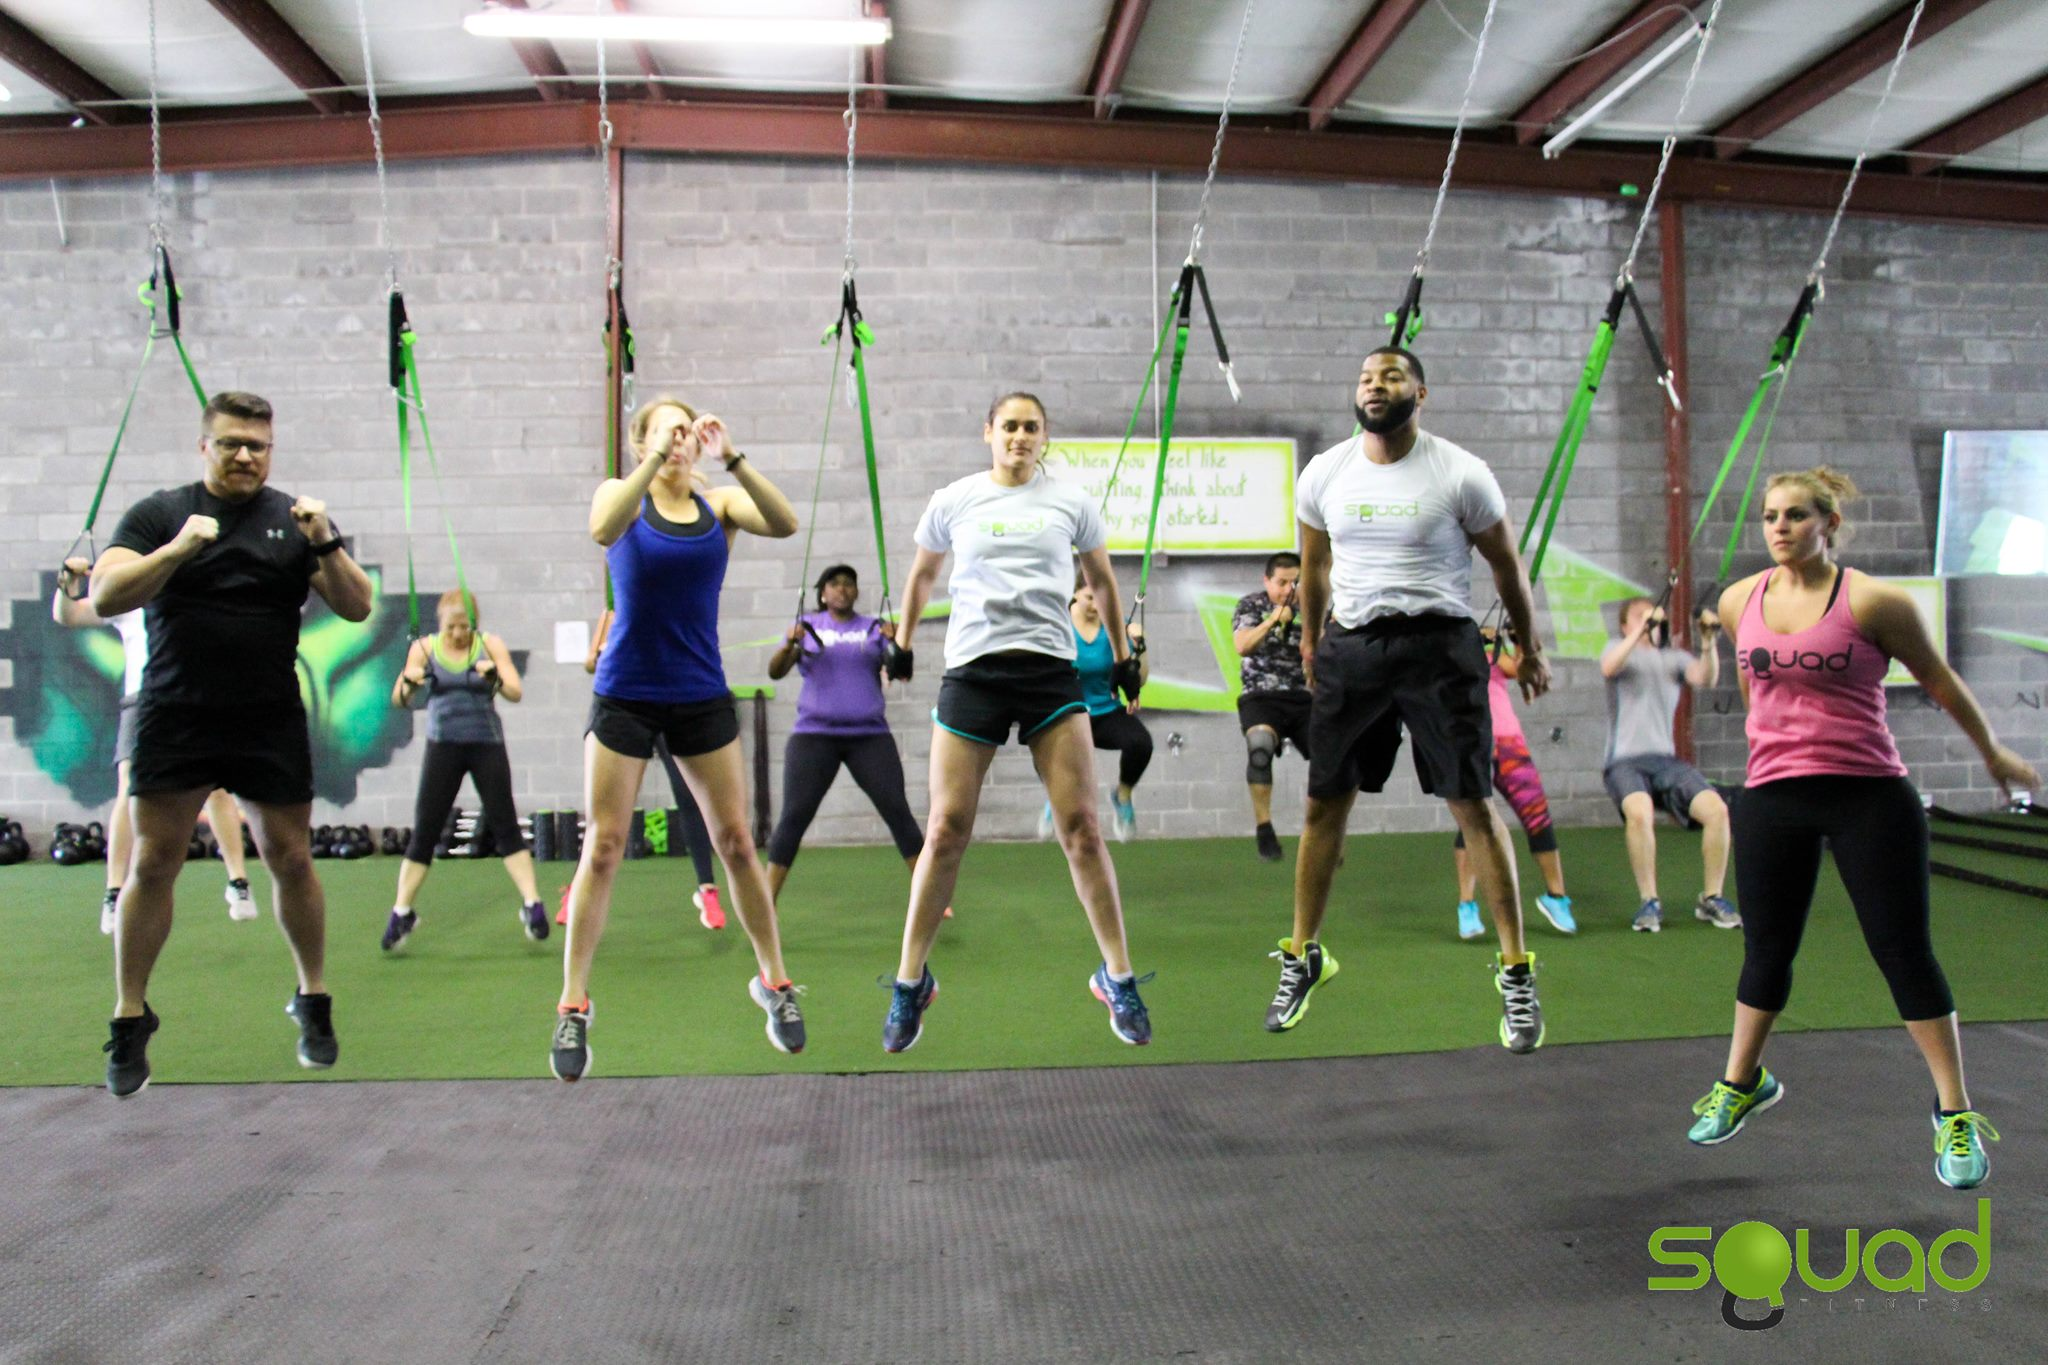 Squad Fitness pass for Trussville Tribune readers